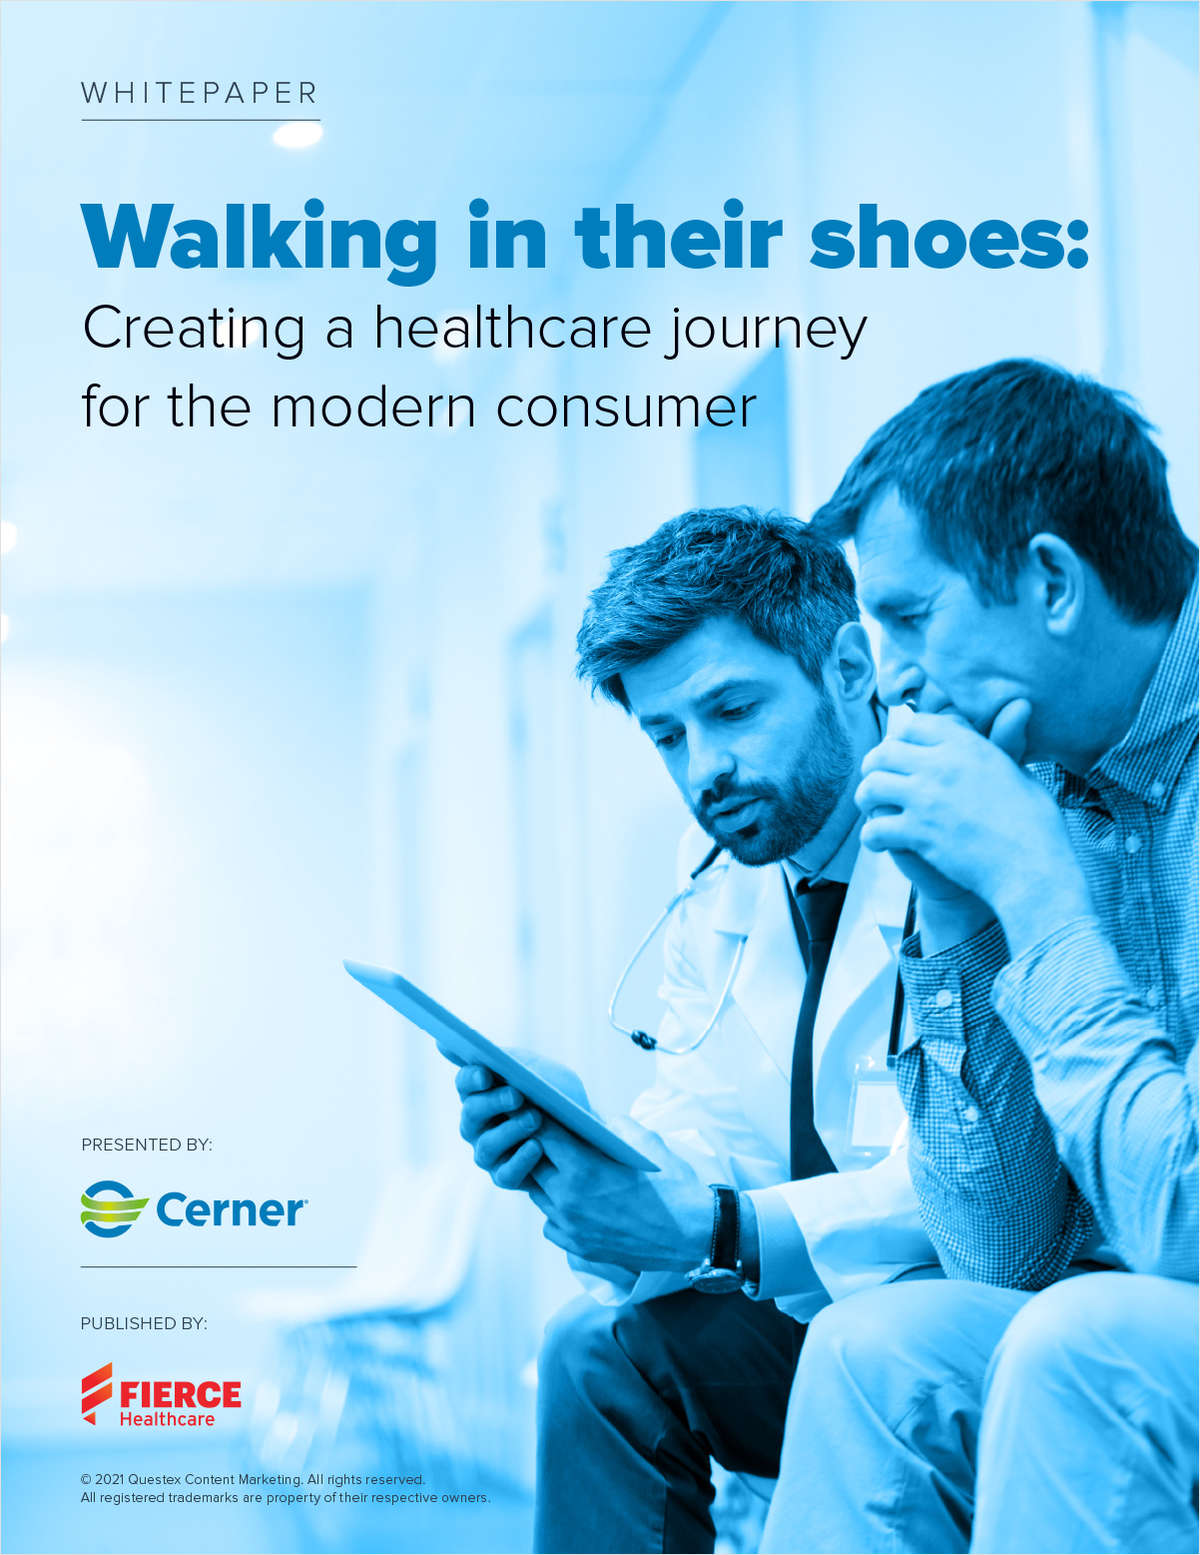 Walking in their shoes: Creating a healthcare journey for the modern consumer